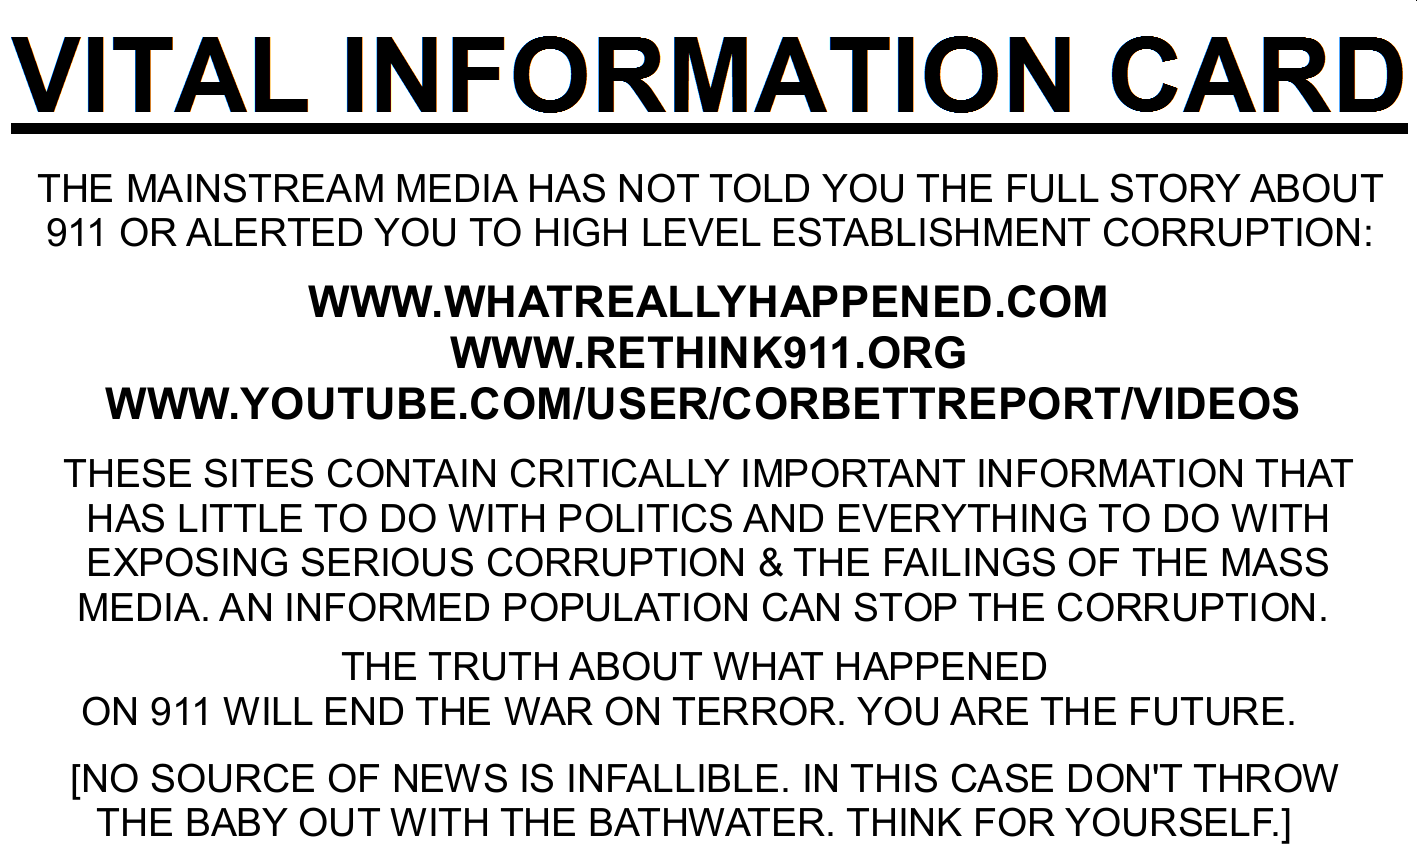 911 Truth and Anti-Corruption Vital Information 'BUSINESS CARD': Street Action Promo Material